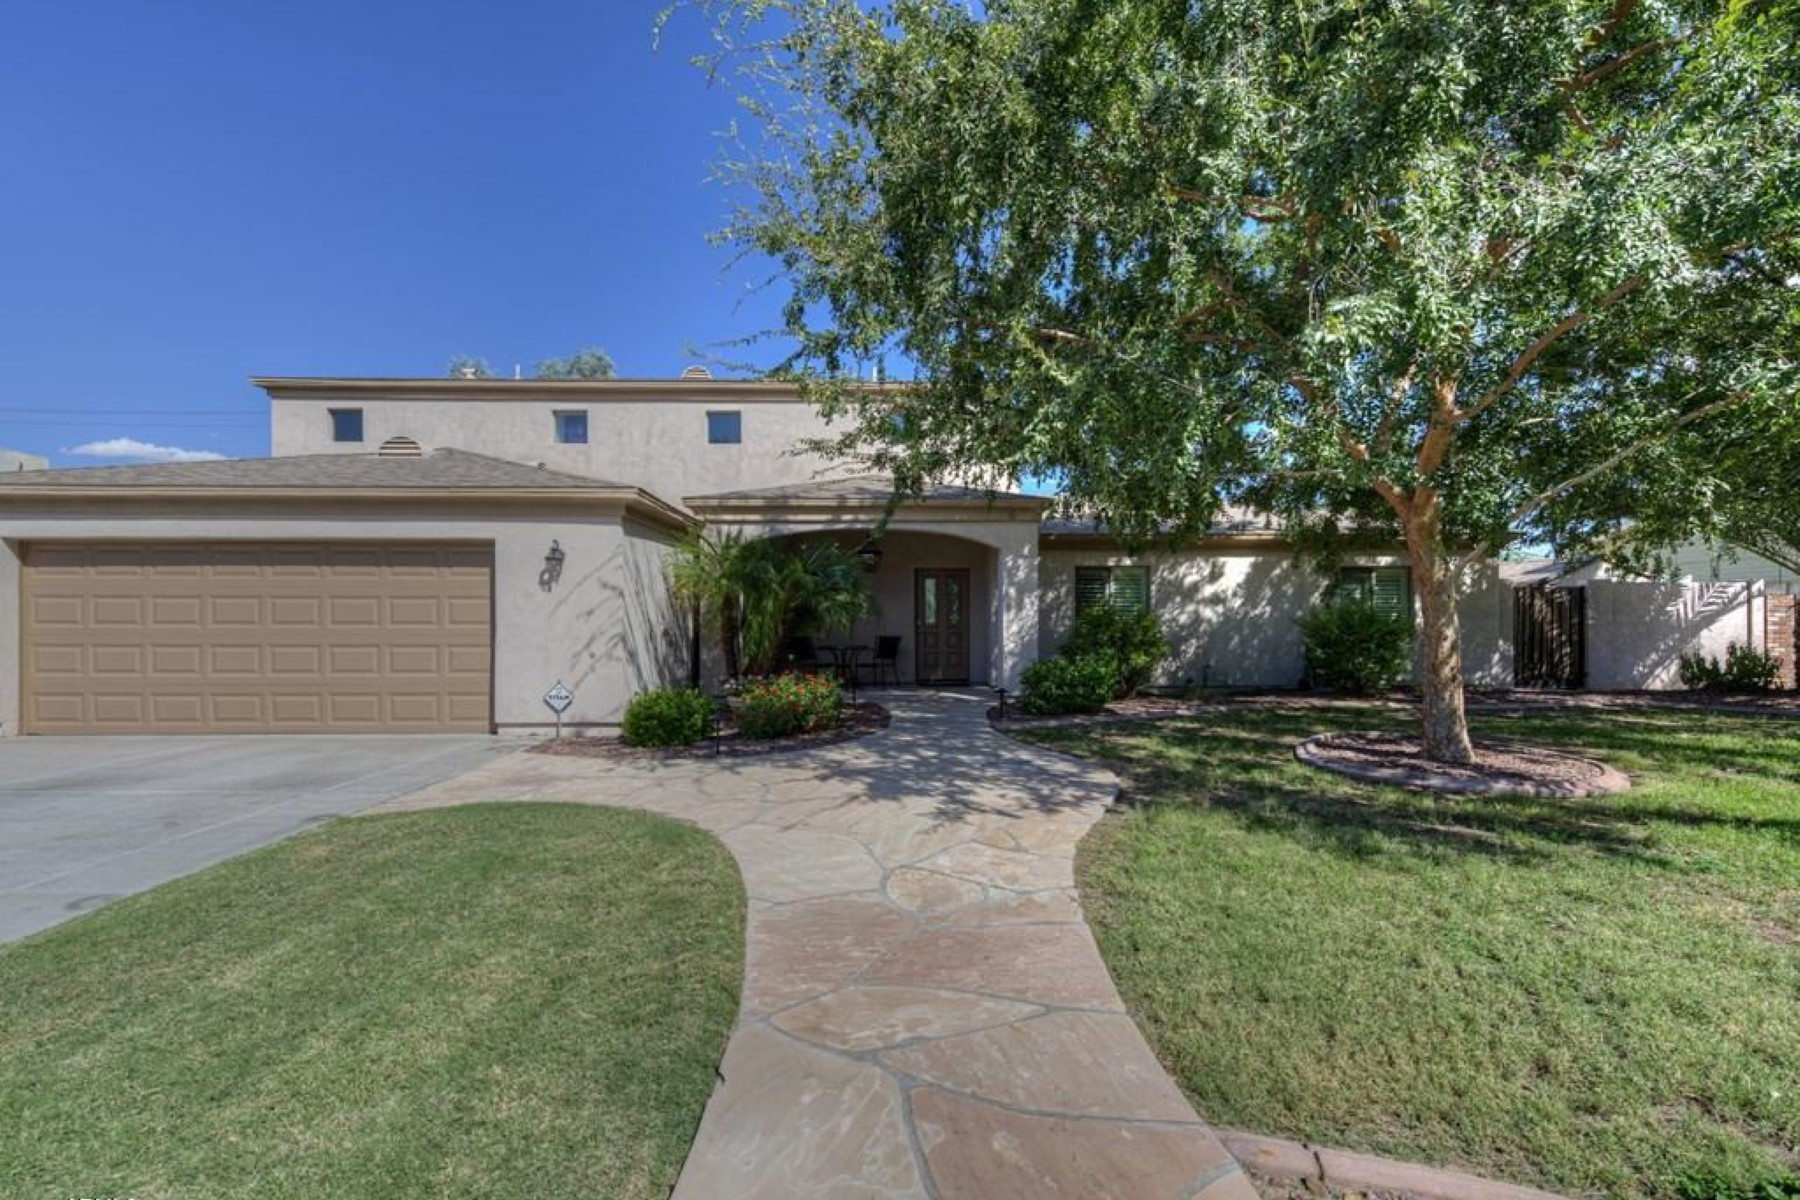 Casa Unifamiliar por un Venta en Perfect family home located in one of the most desirable neighborhood in Arcadia 3431 N 51st St Phoenix, Arizona, 85018 Estados Unidos